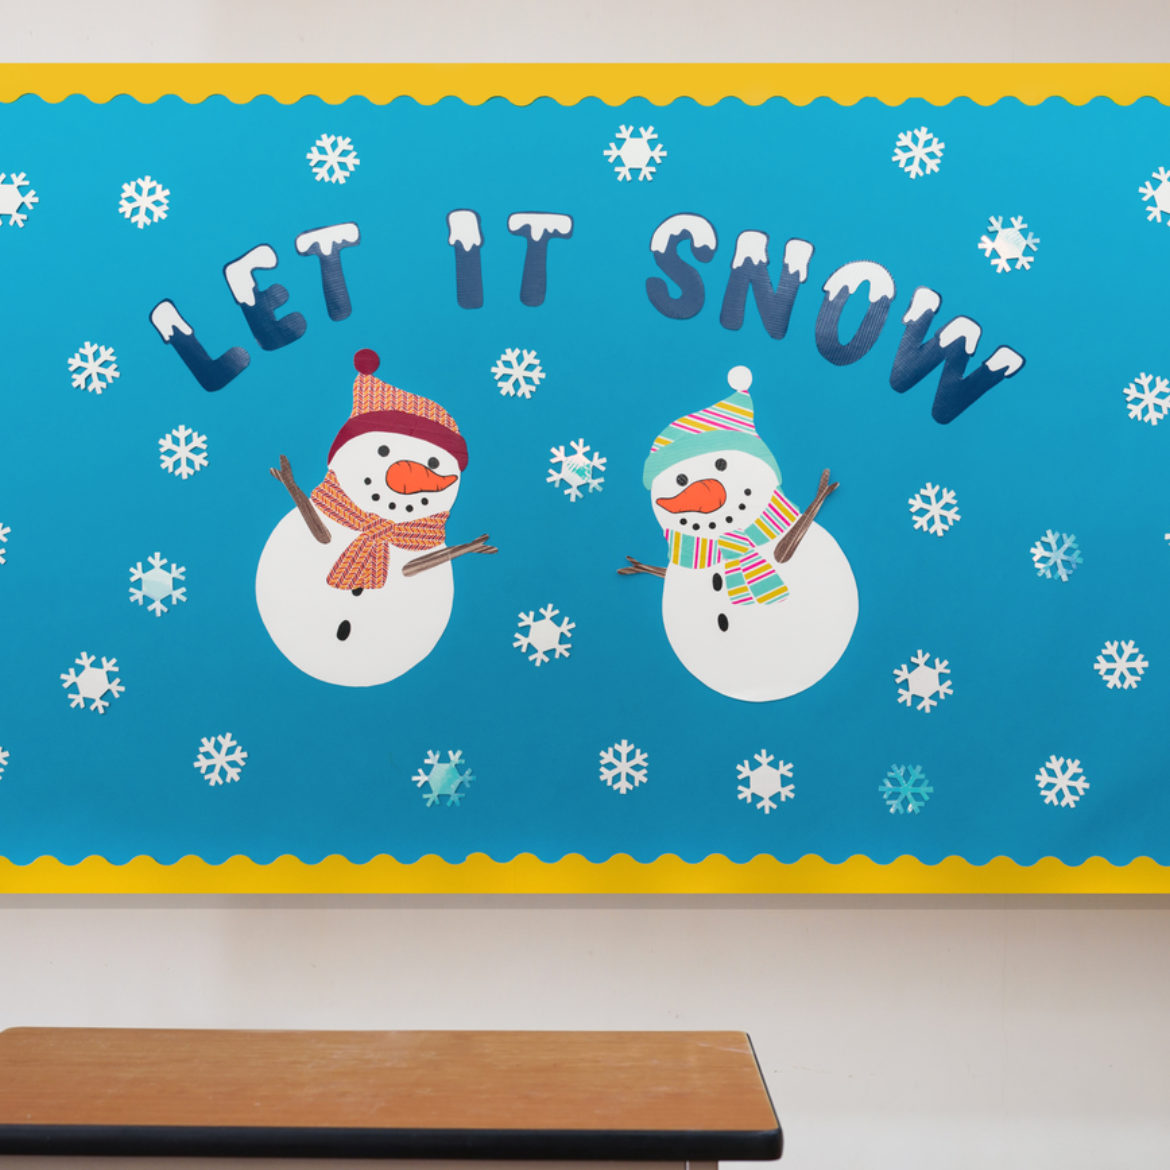 Bulletin Board Header